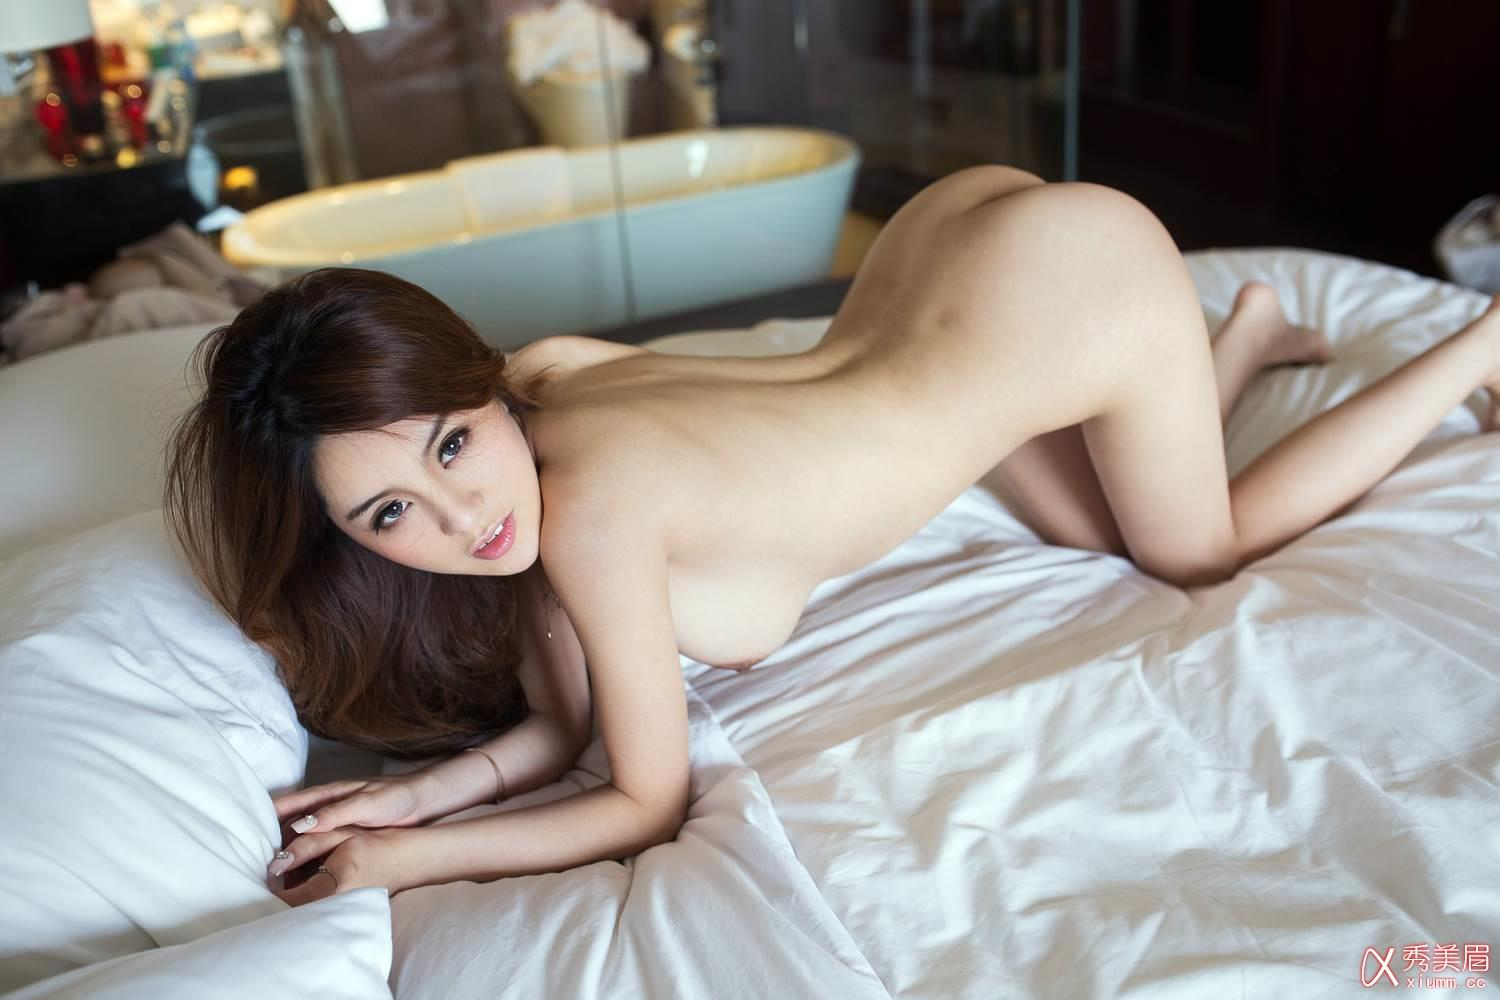 opinion actions girls nude video the phrase removed